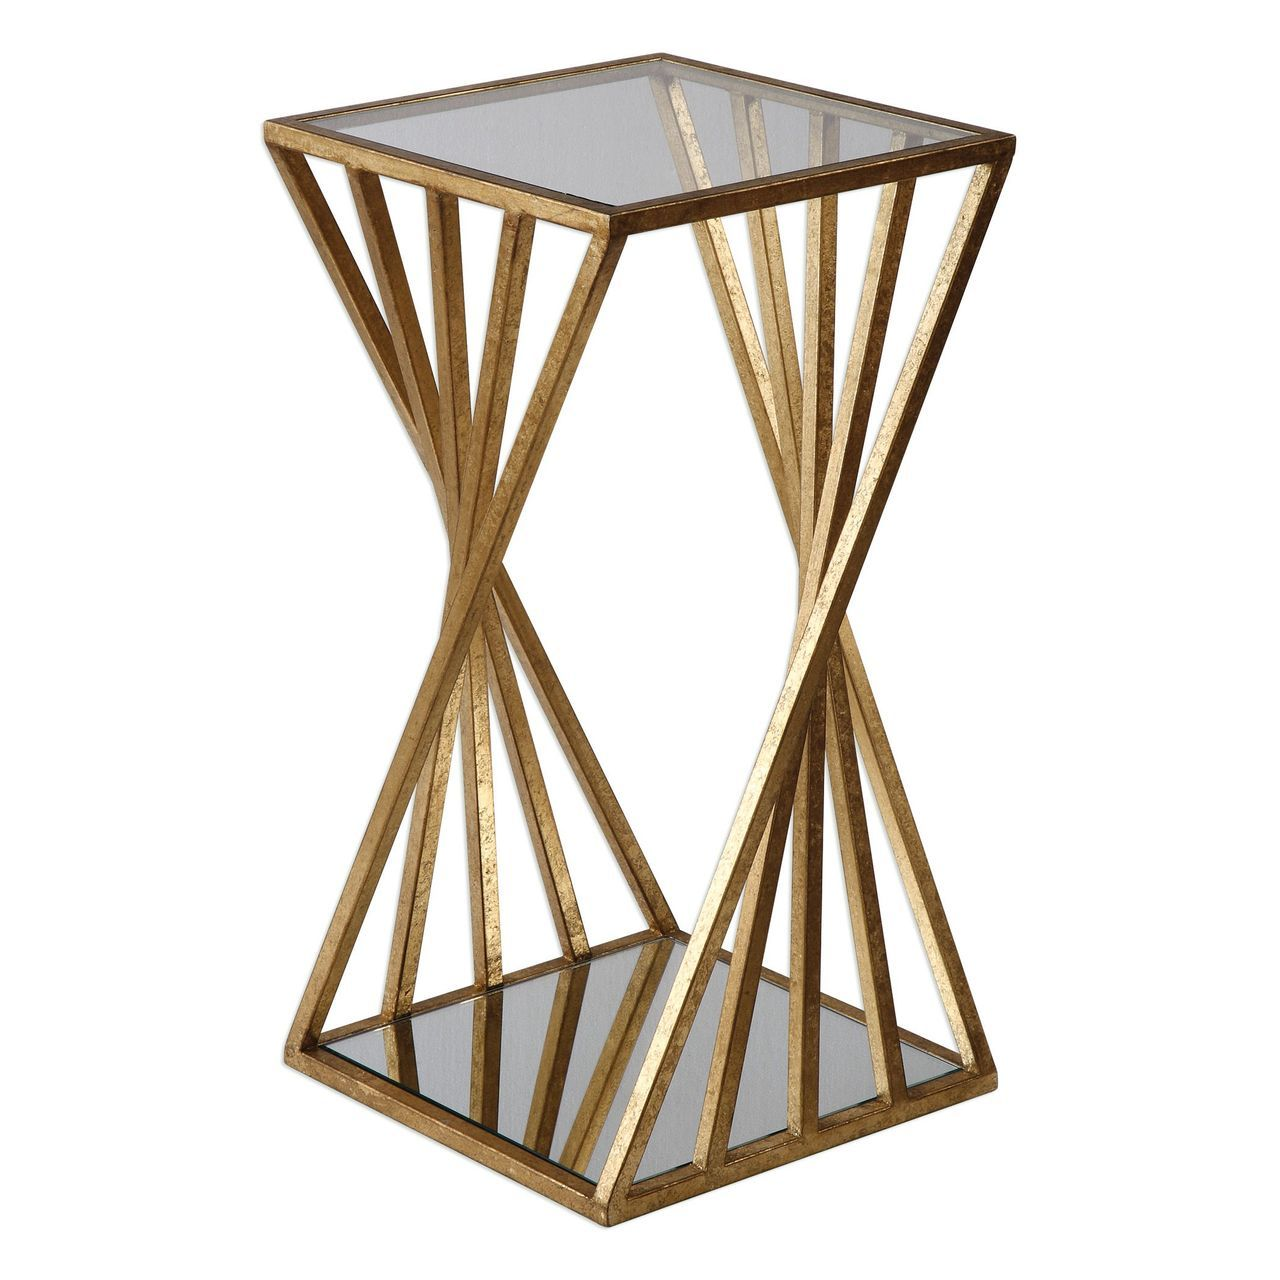 gold angle geometric square accent table open pedestal column modern end golden angles room lamp black mirrored bedside tall thin lamps acrylic nightstand secret gun compartment